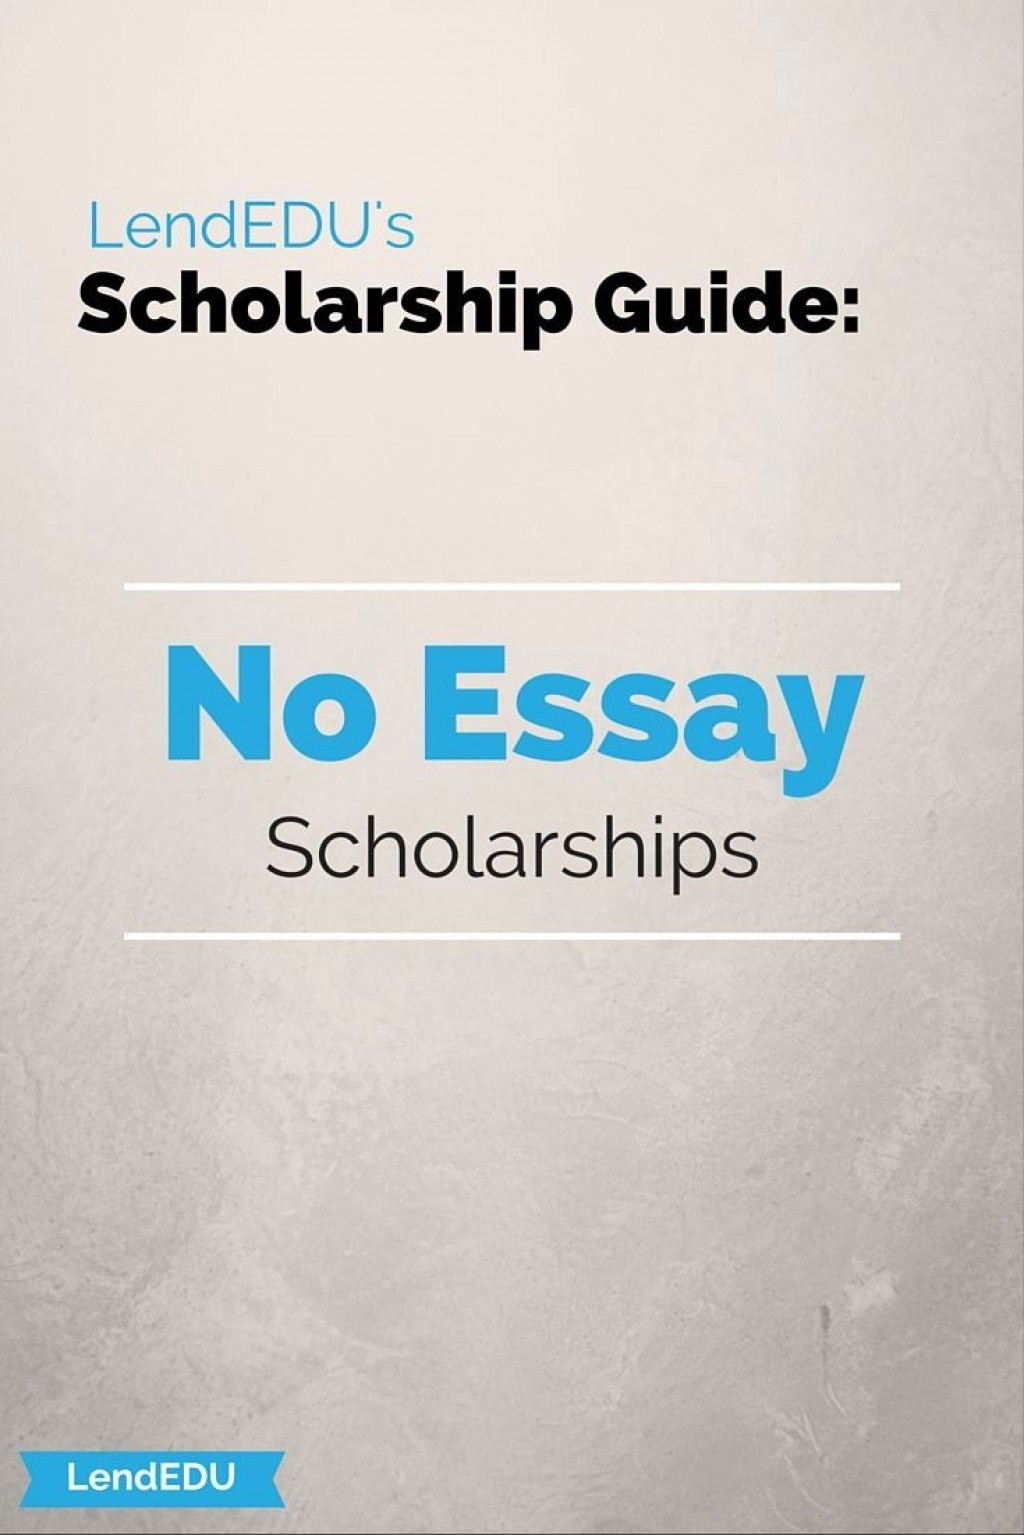 018 No Essay Scholarships Example Exceptional December 2018 For Undergraduates Large